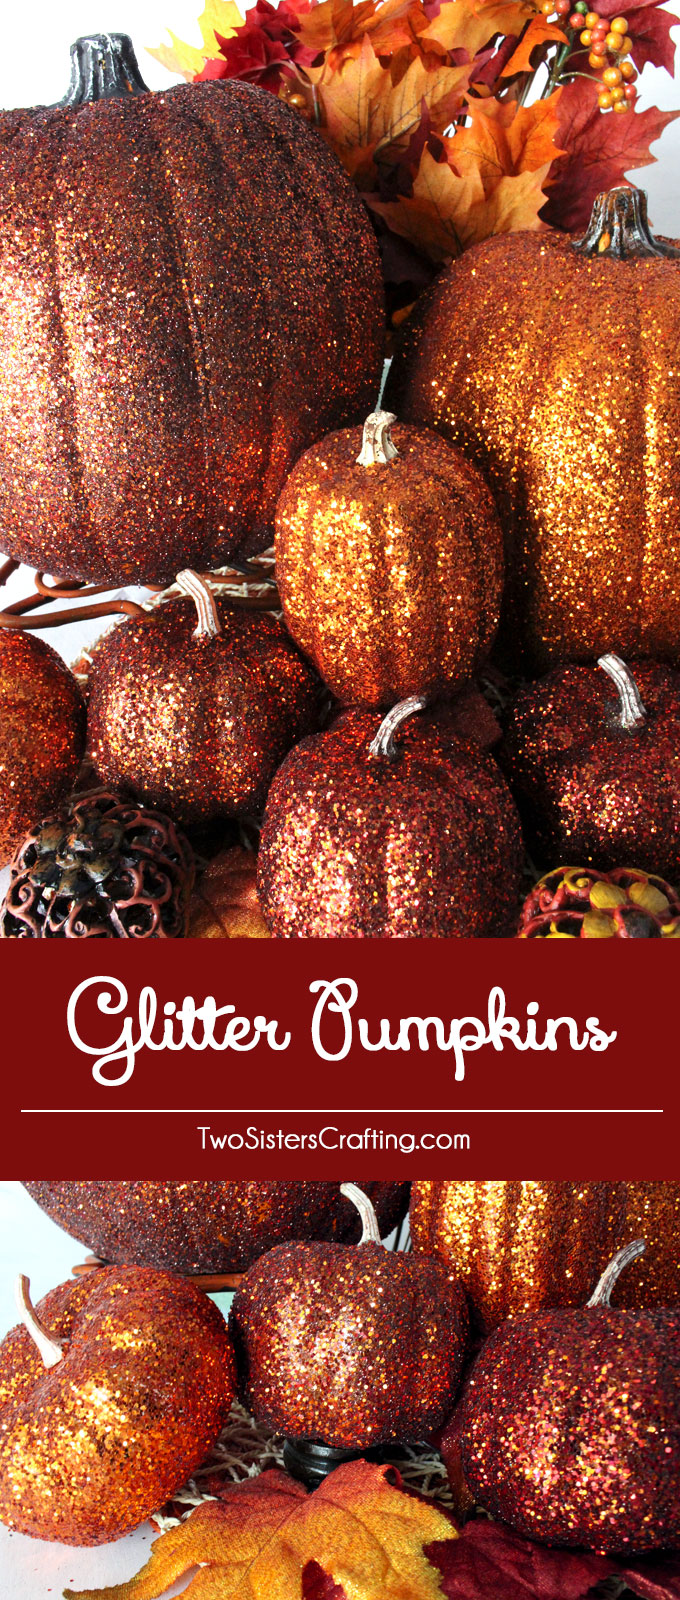 DIY Glitter Pumpkins are so easy to make that there is no need to decorate this fall with plain pumpkins. These Glittery Pumpkins make a fabulous Fall decoration, Thanksgiving Centerpiece or a Halloween decoration. Grab your glitter and let's get started! Follow us for more great Halloween and Thanksgiving decoration ideas.